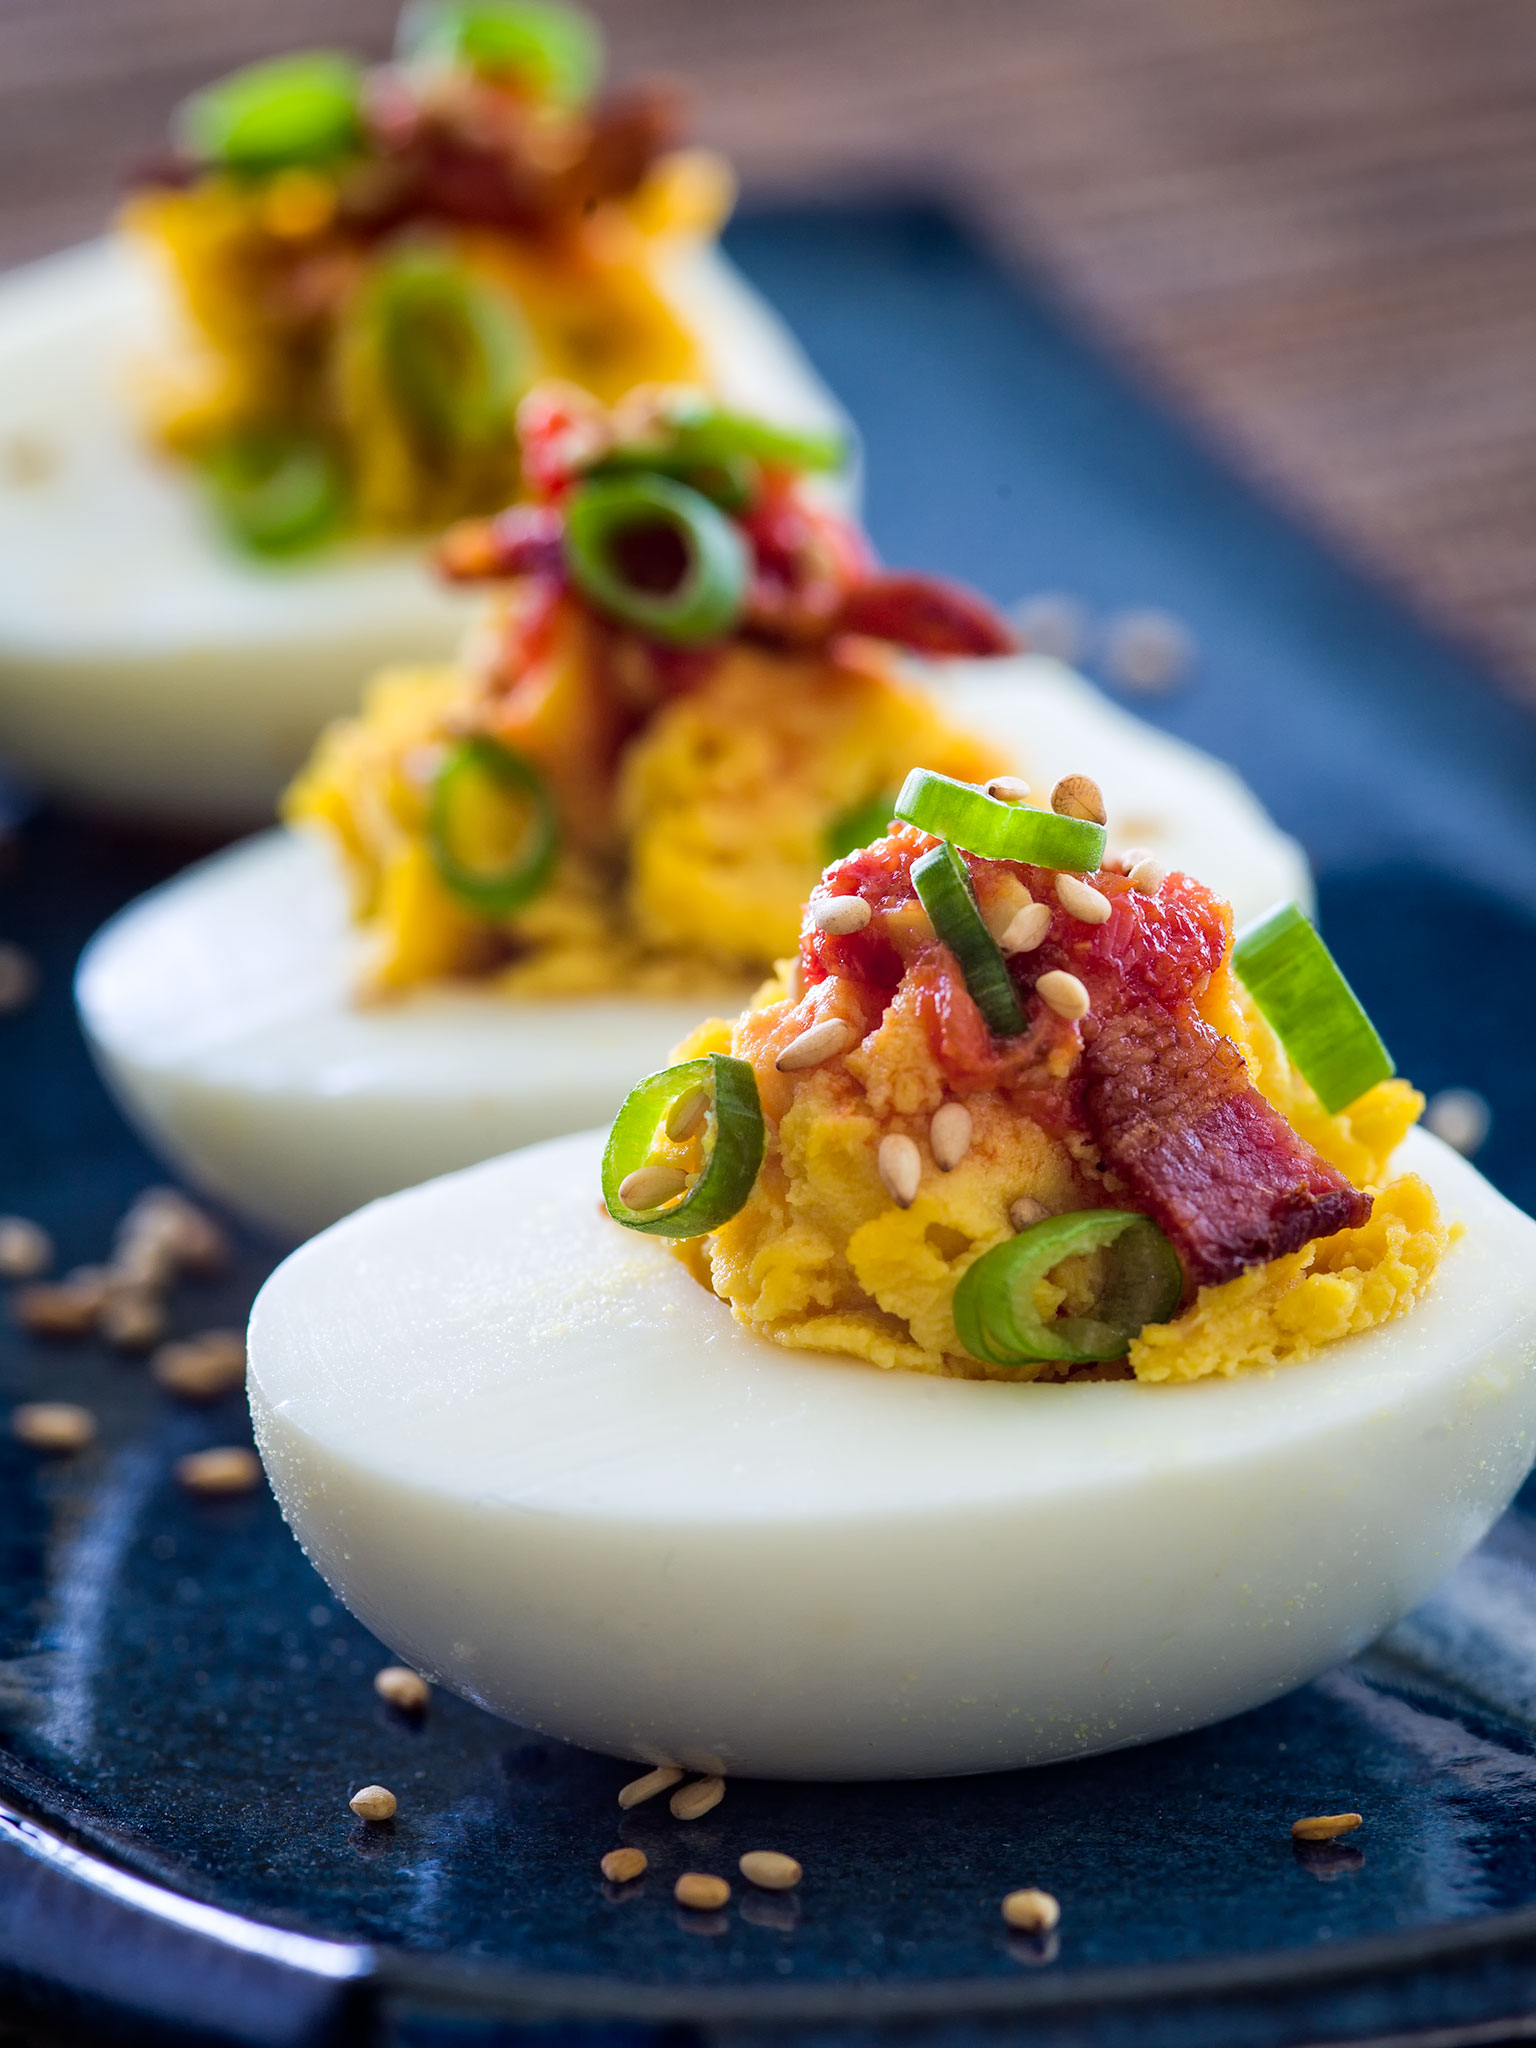 ... start an exploration into ethnic varieties of deviled eggs for me